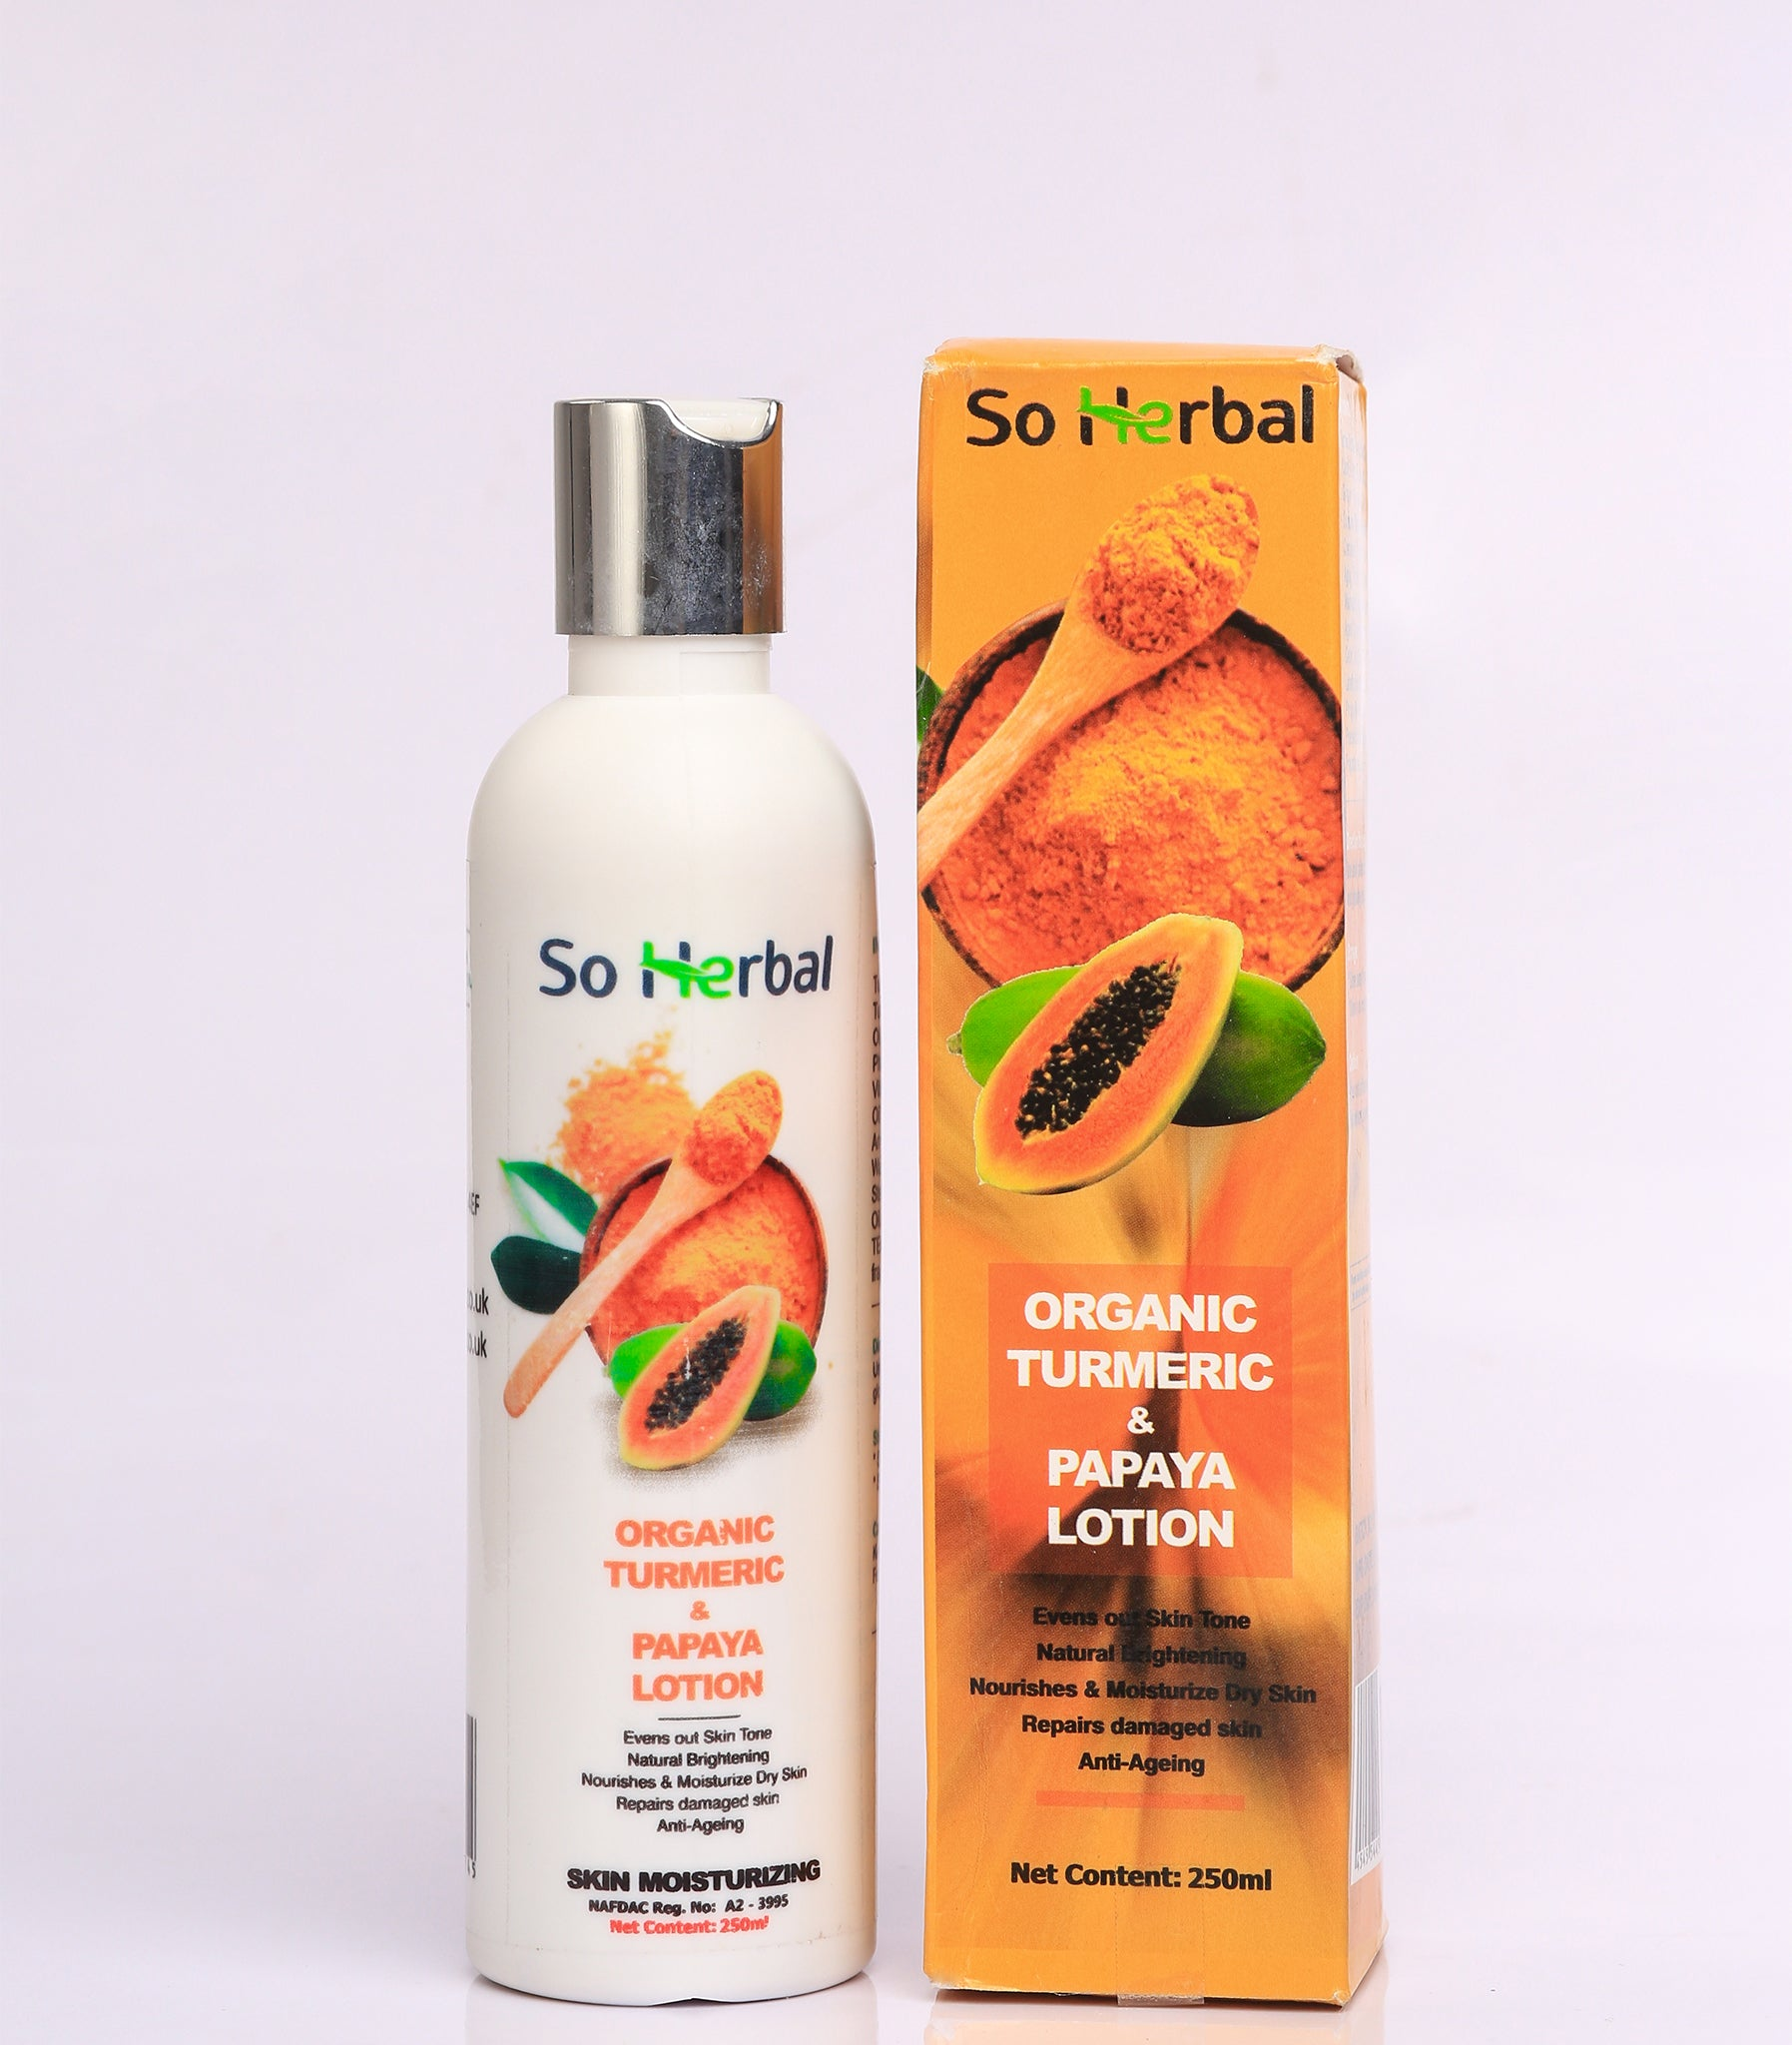 Organic Turmeric & Papaya Lotion